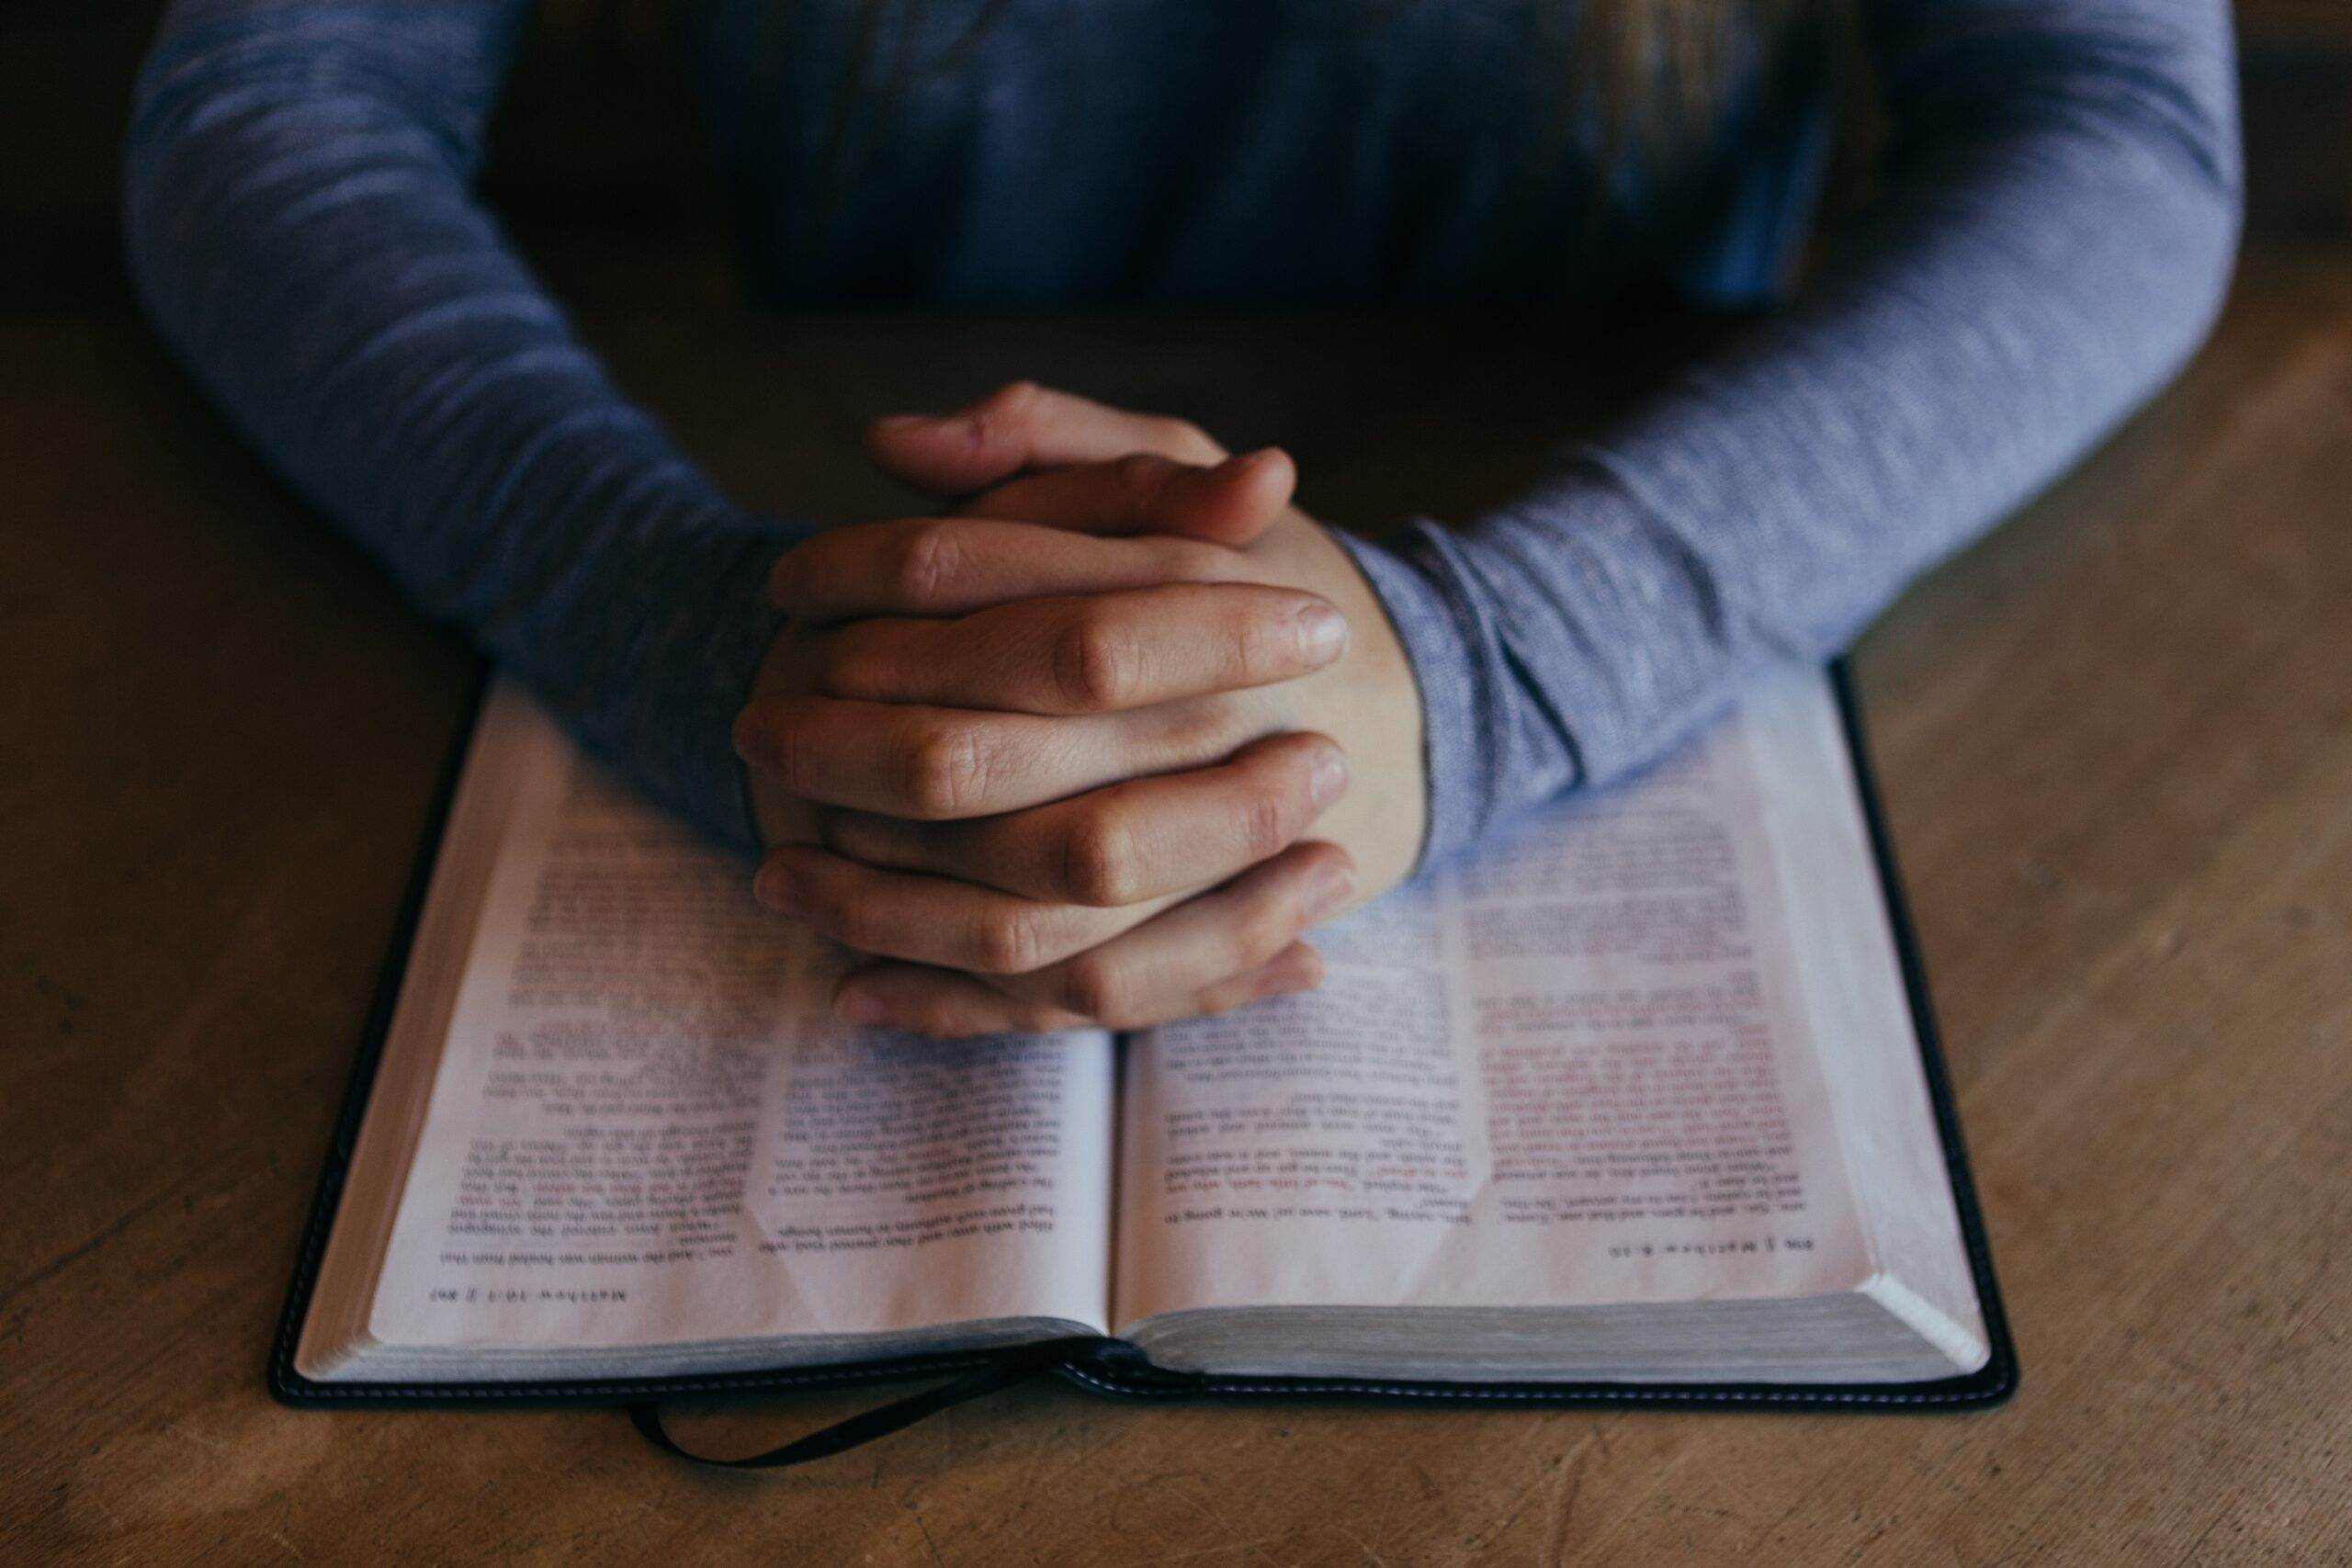 Dutch-teenager-praying-with-a-bible-in-a-gay-conversion-camp